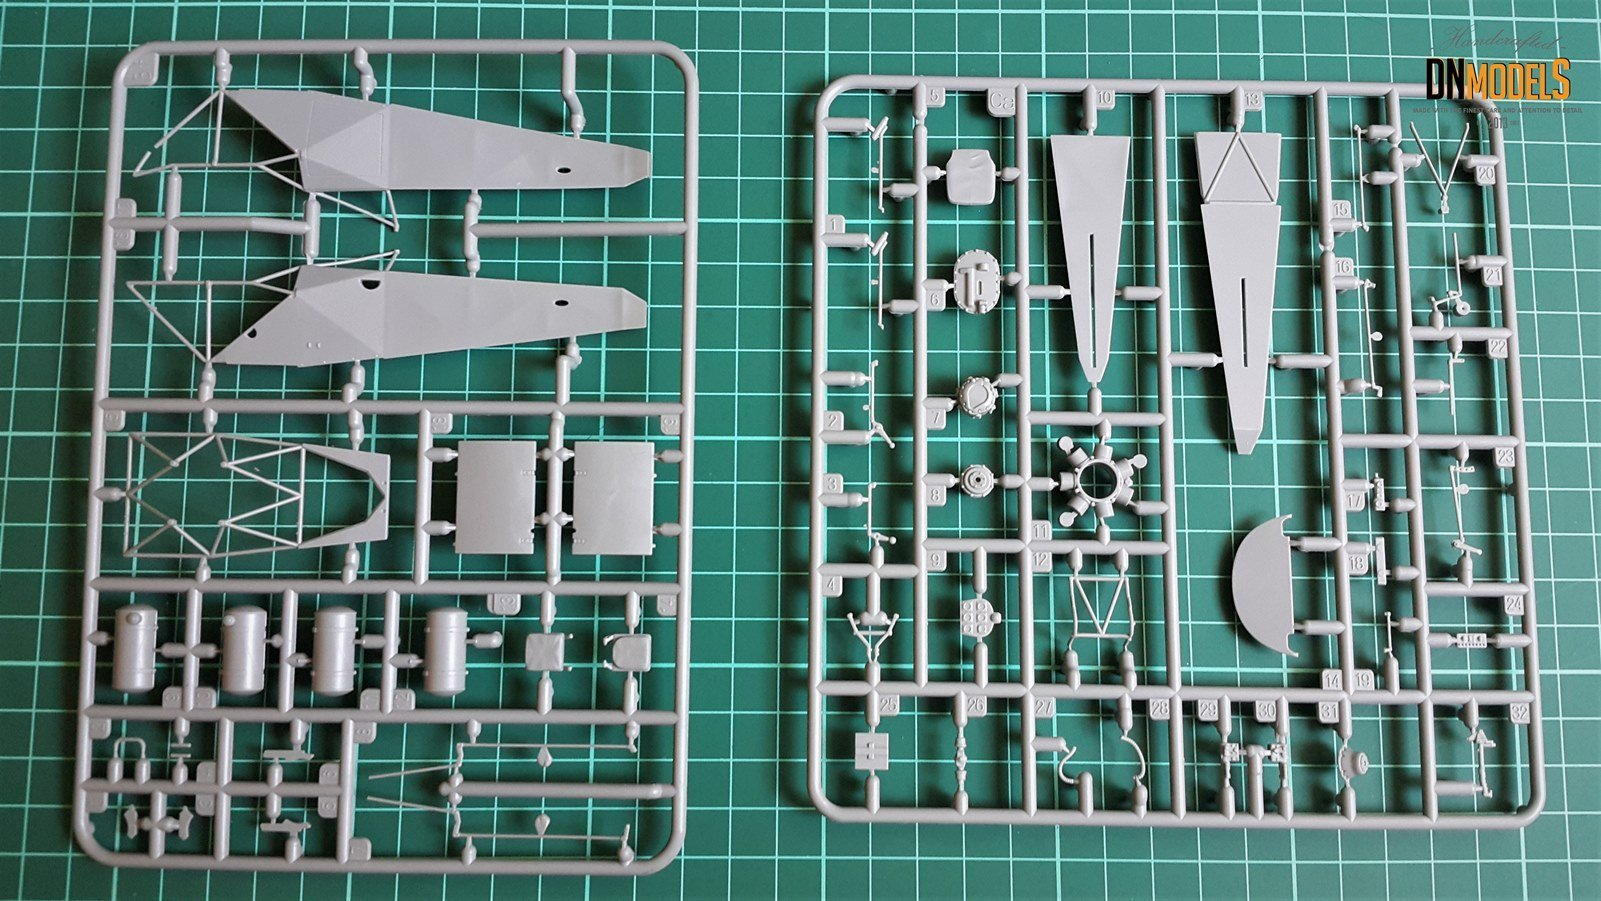 Flettner Fi 282 V21 kolibri dn models masks for scale models review unboxing miniart hummingbird